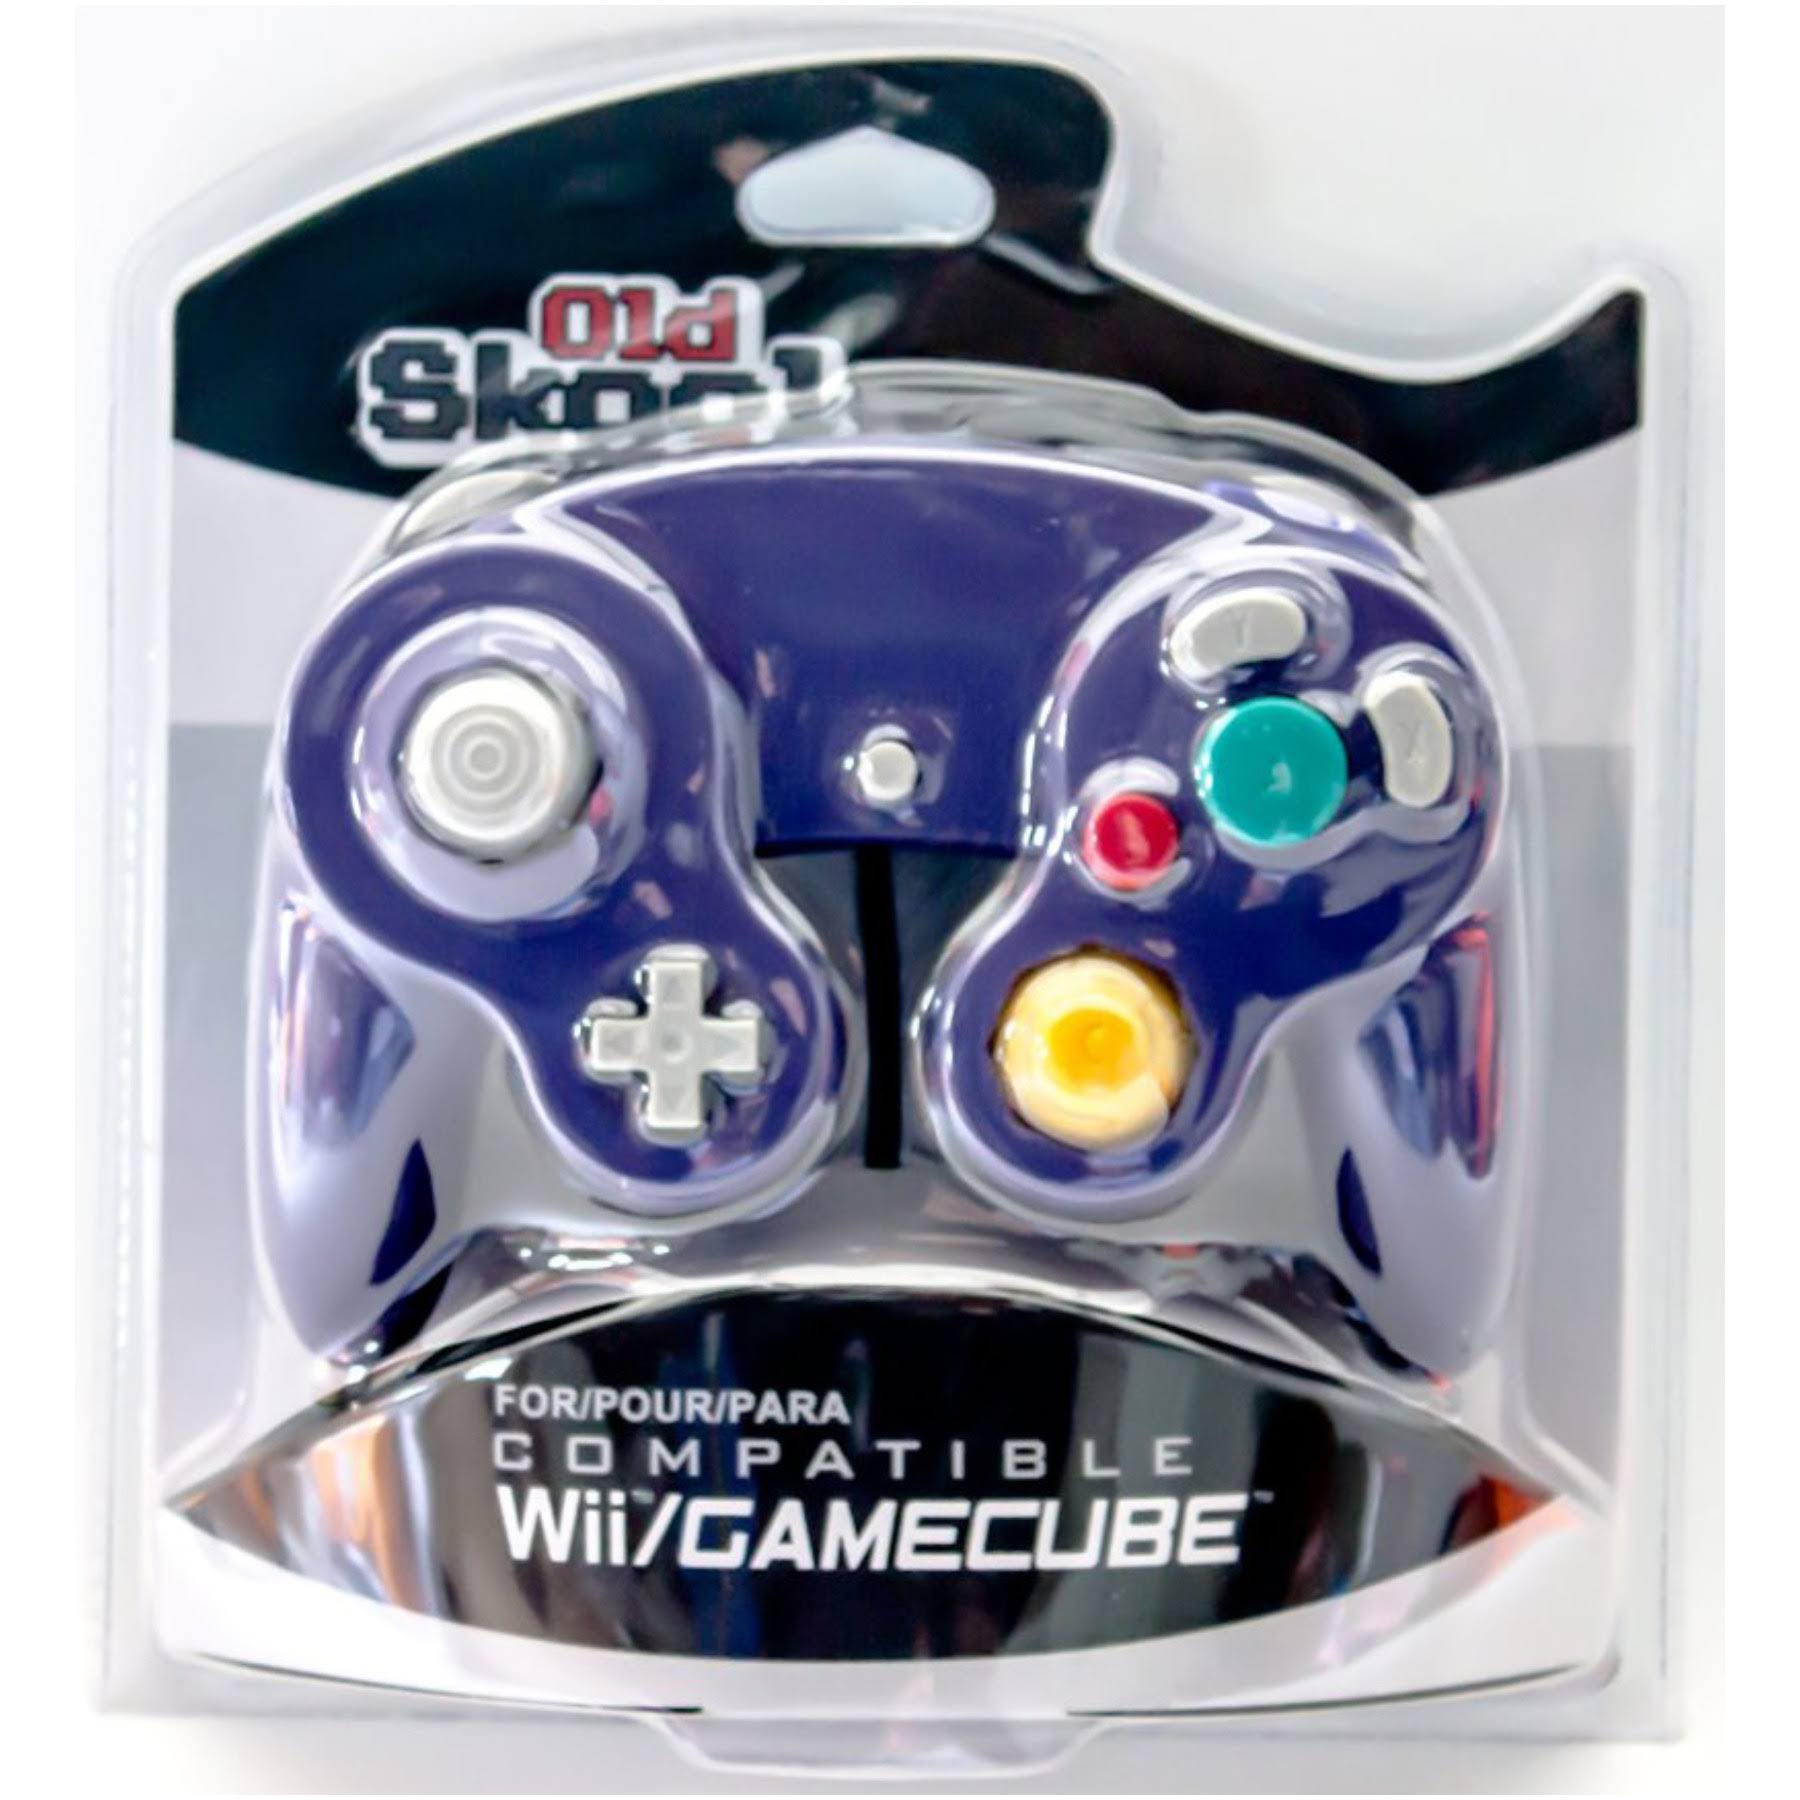 Old Skool Wii Compatible GameCube Controller - Purple